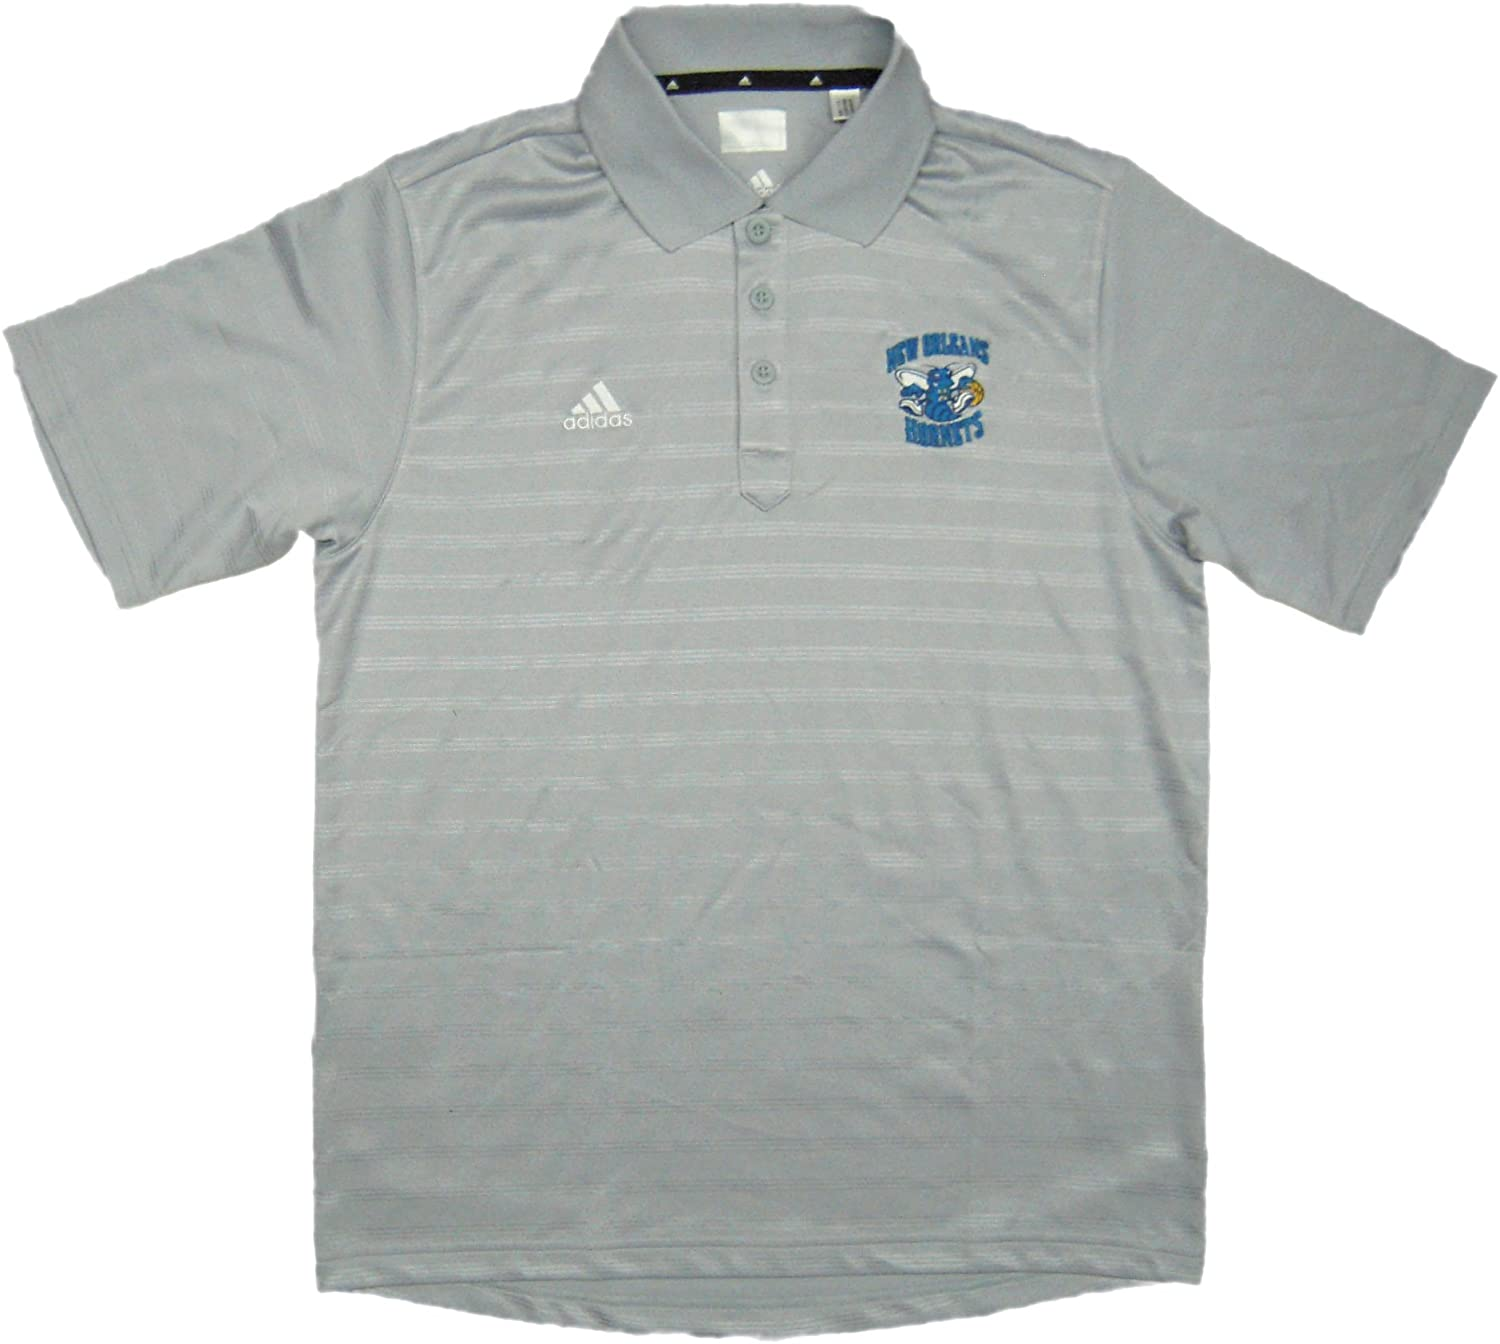 New Orleans Hornets Team Issued adidas Polo Shirt Size 3XL - Light Gray